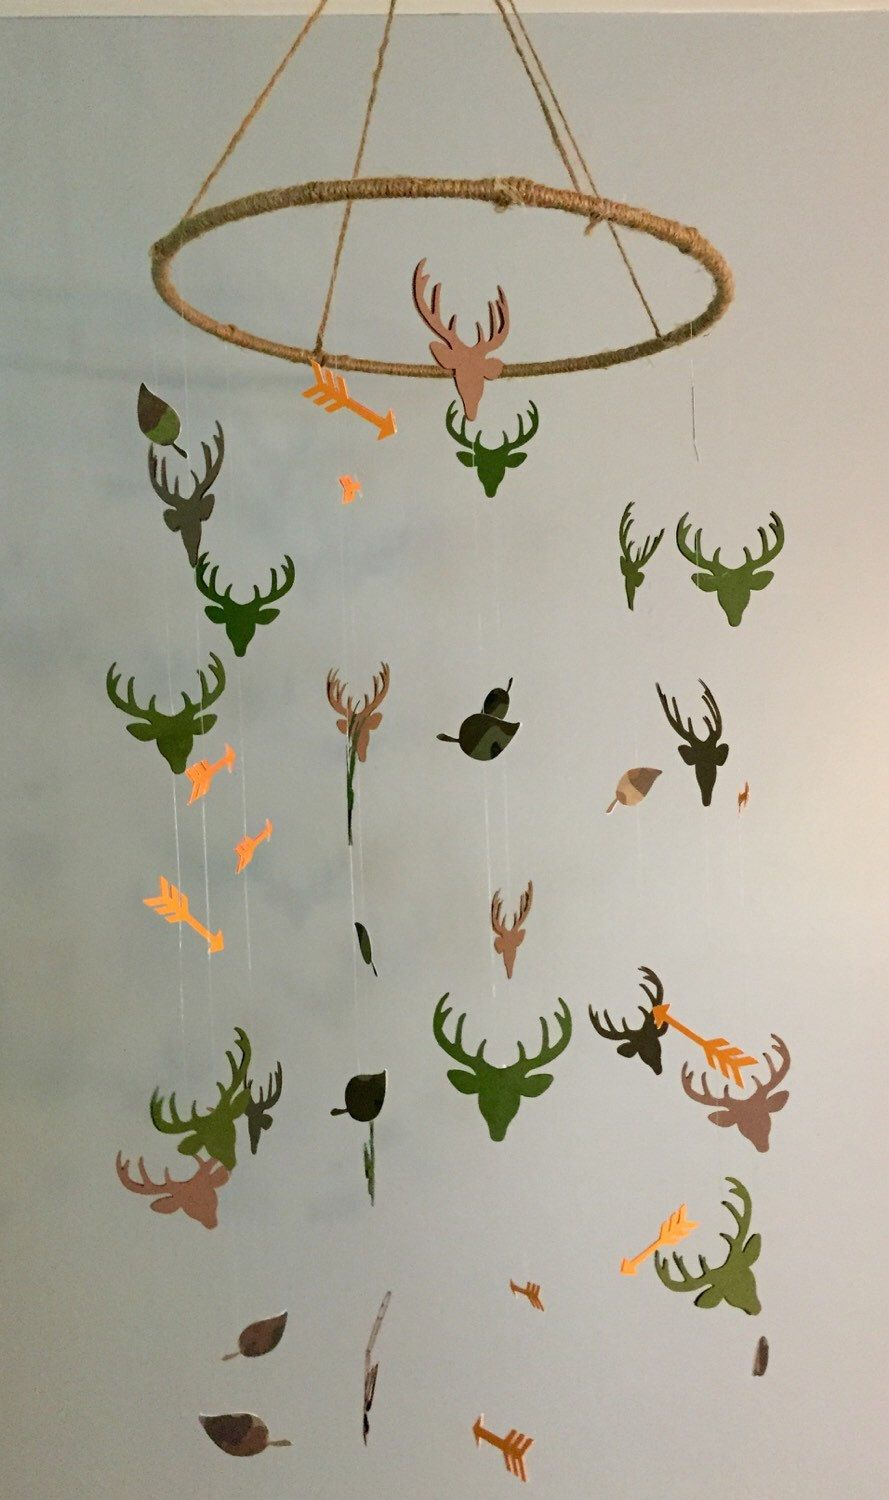 Camo Deer Mobile, baby boy mobile, baby girl mobile, camo nursery, camo decoration, deer mobile, deer nursery, hunting mobile by GoldenArrowBoutique on Etsy https://www.etsy.com/listing/244731951/camo-deer-mobile-baby-boy-mobile-baby